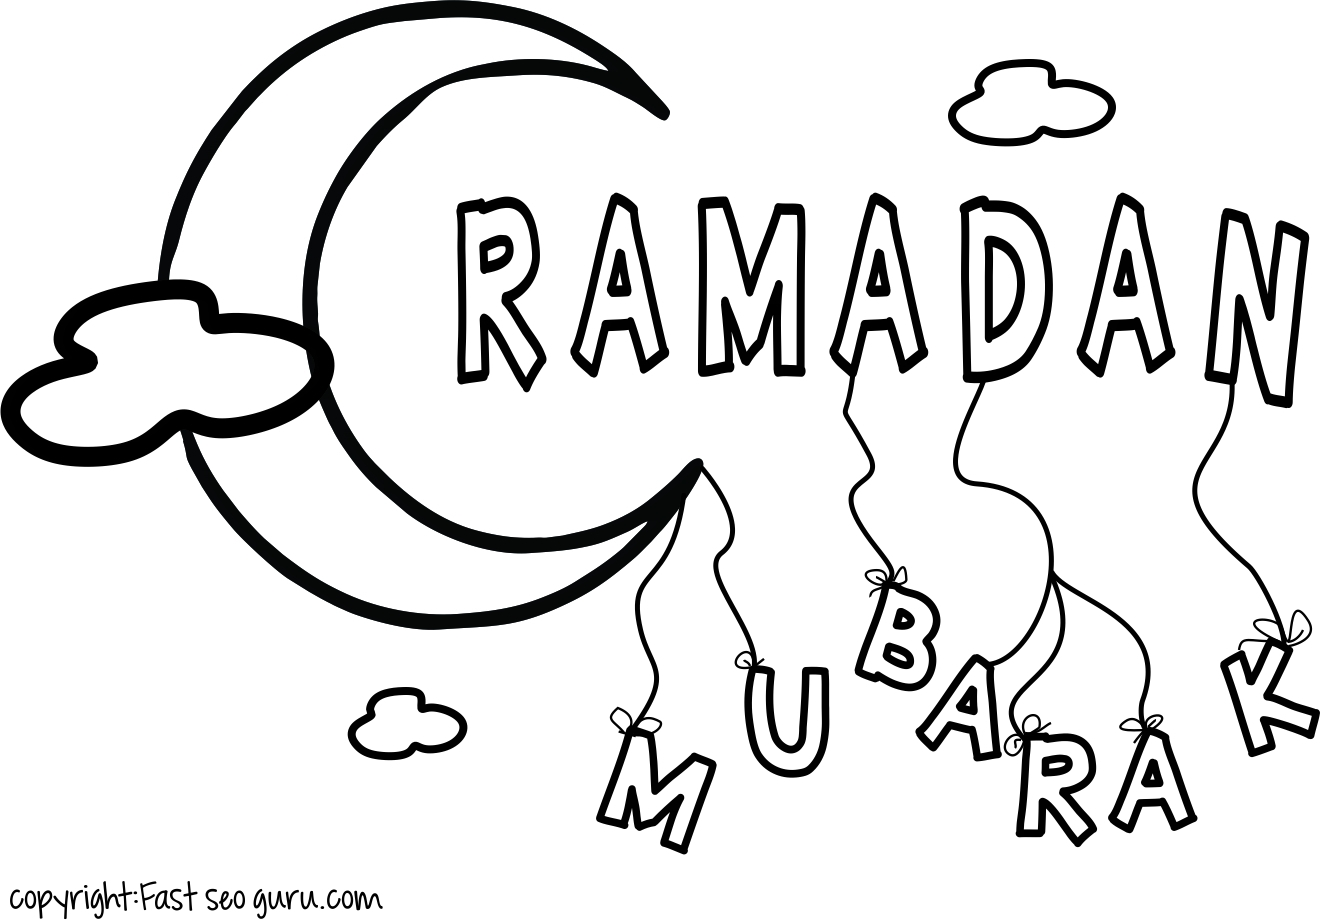 ramadan coloring pages - printable ramadan mubarak coloring pages for kids